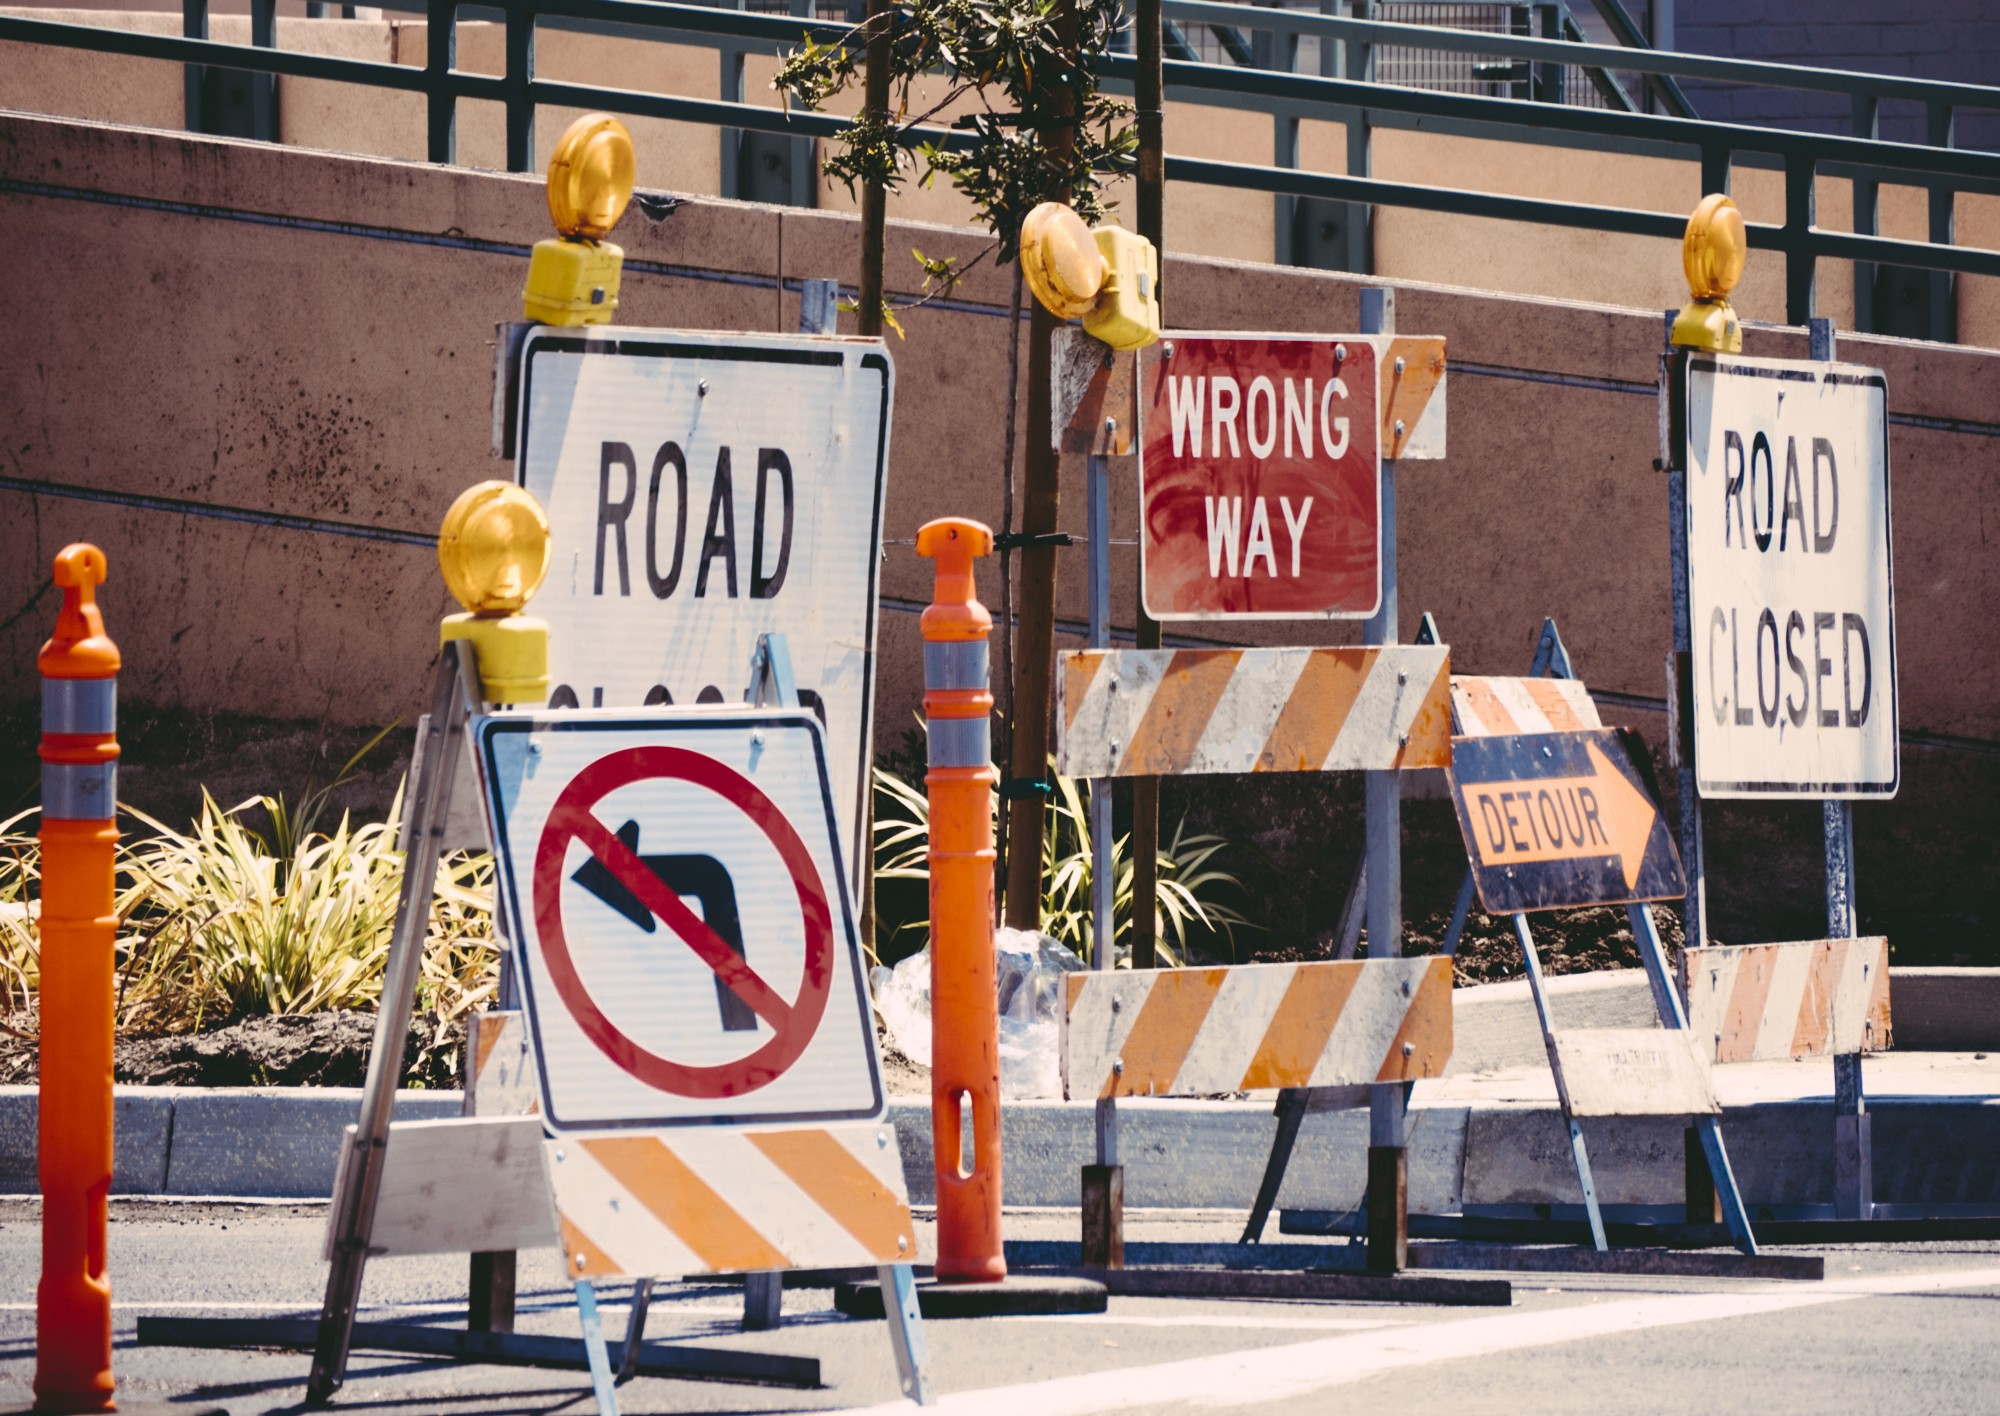 Making right decisions with your life, road closed, wrong way, God's Word gives illumination.